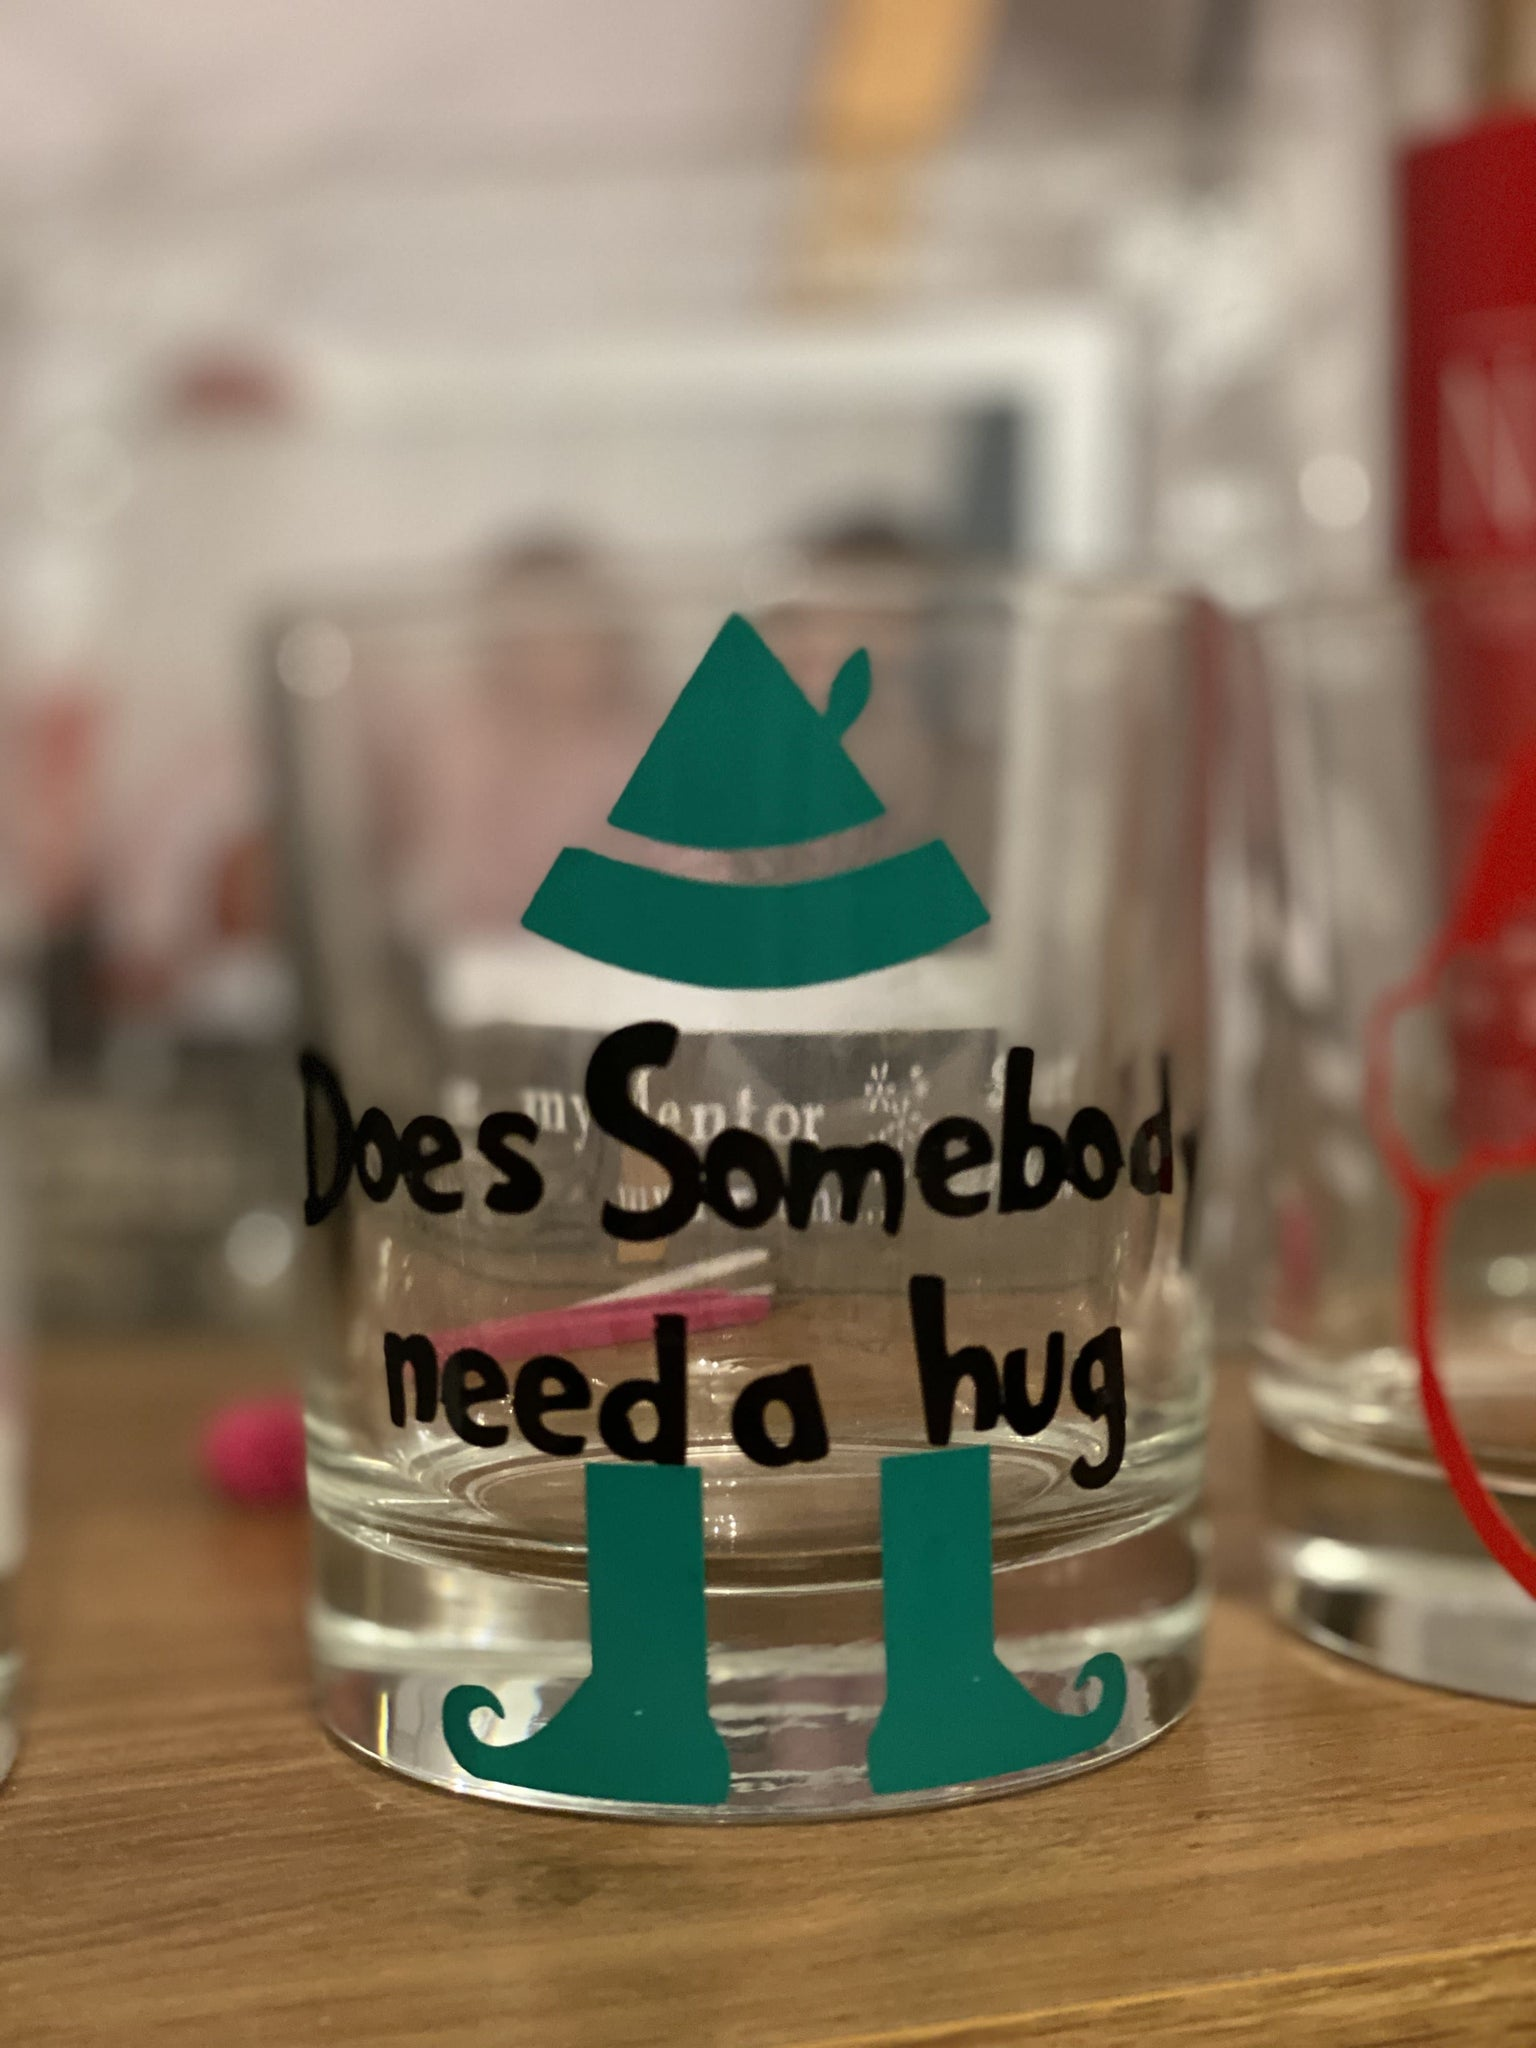 Does Somebody needs a hug candle 30 ml